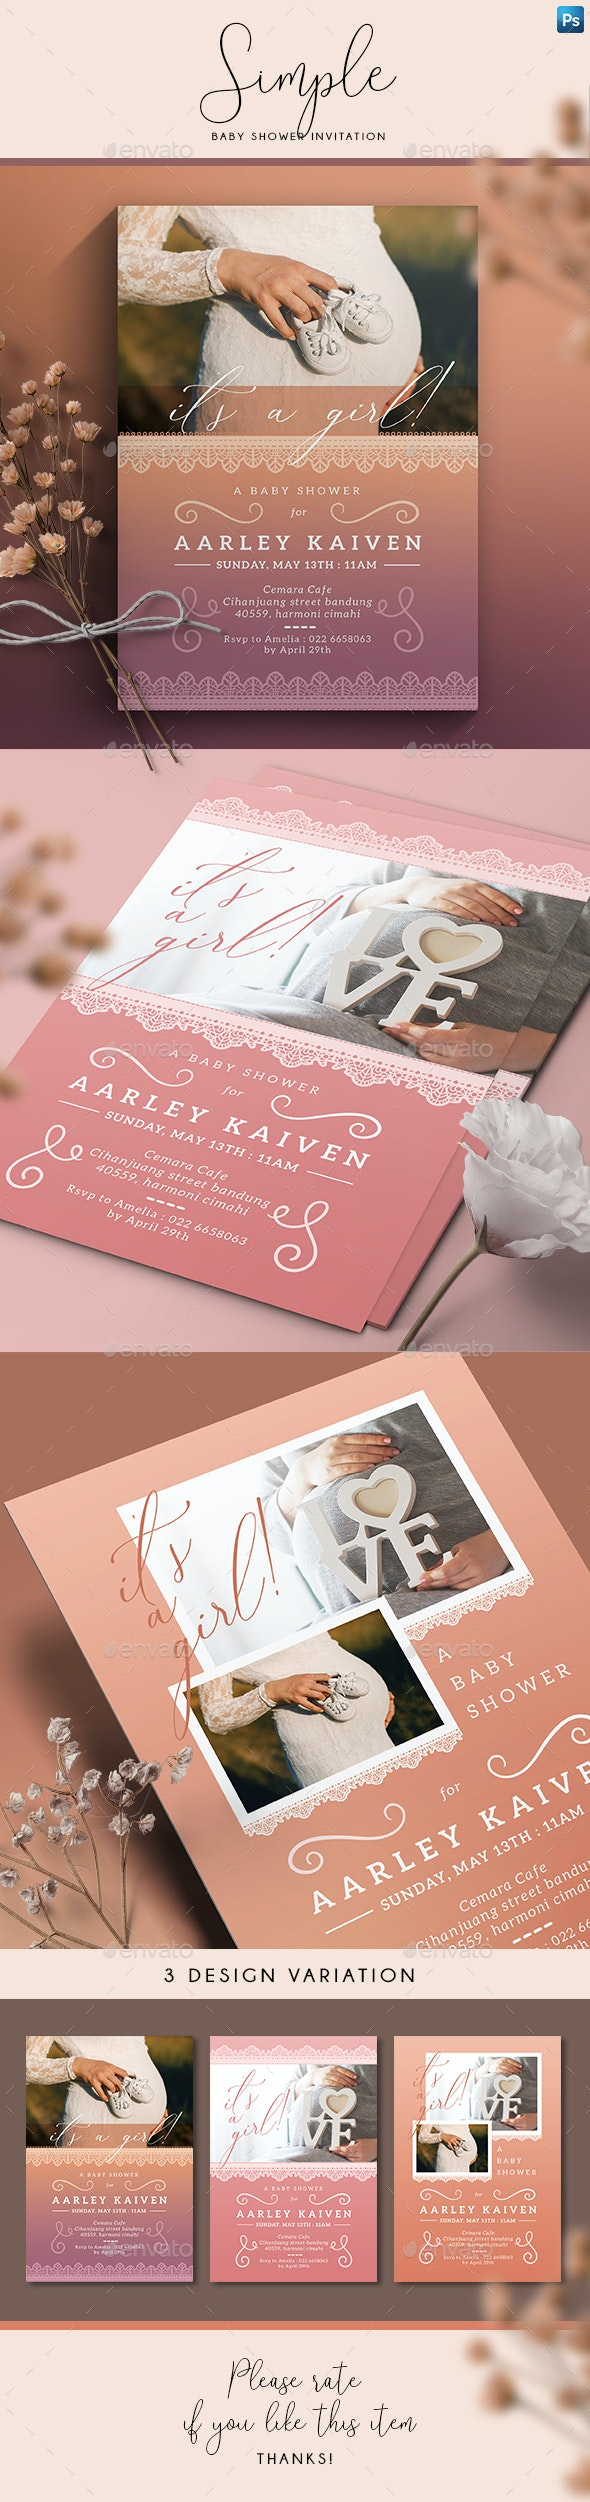 Simple Baby Shower Invitation - Family Cards & Invites